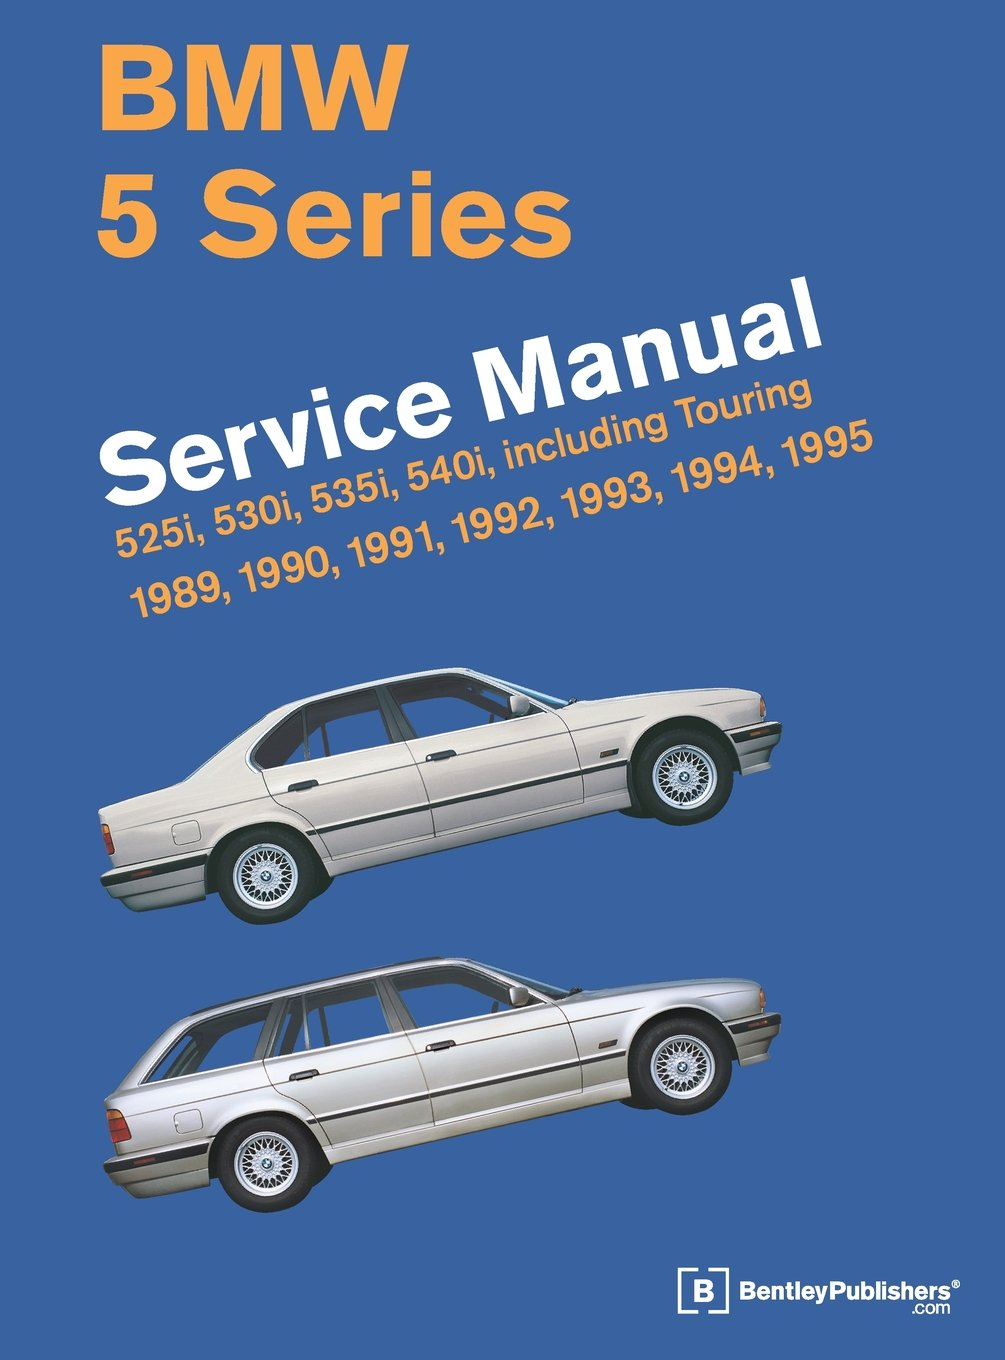 1994 Bmw 525i Wiring Diagram 5 Series E34 Service Manual 1989 1990 1991 1992 1993 1995 Bentley Publishers 9780837616971 Books